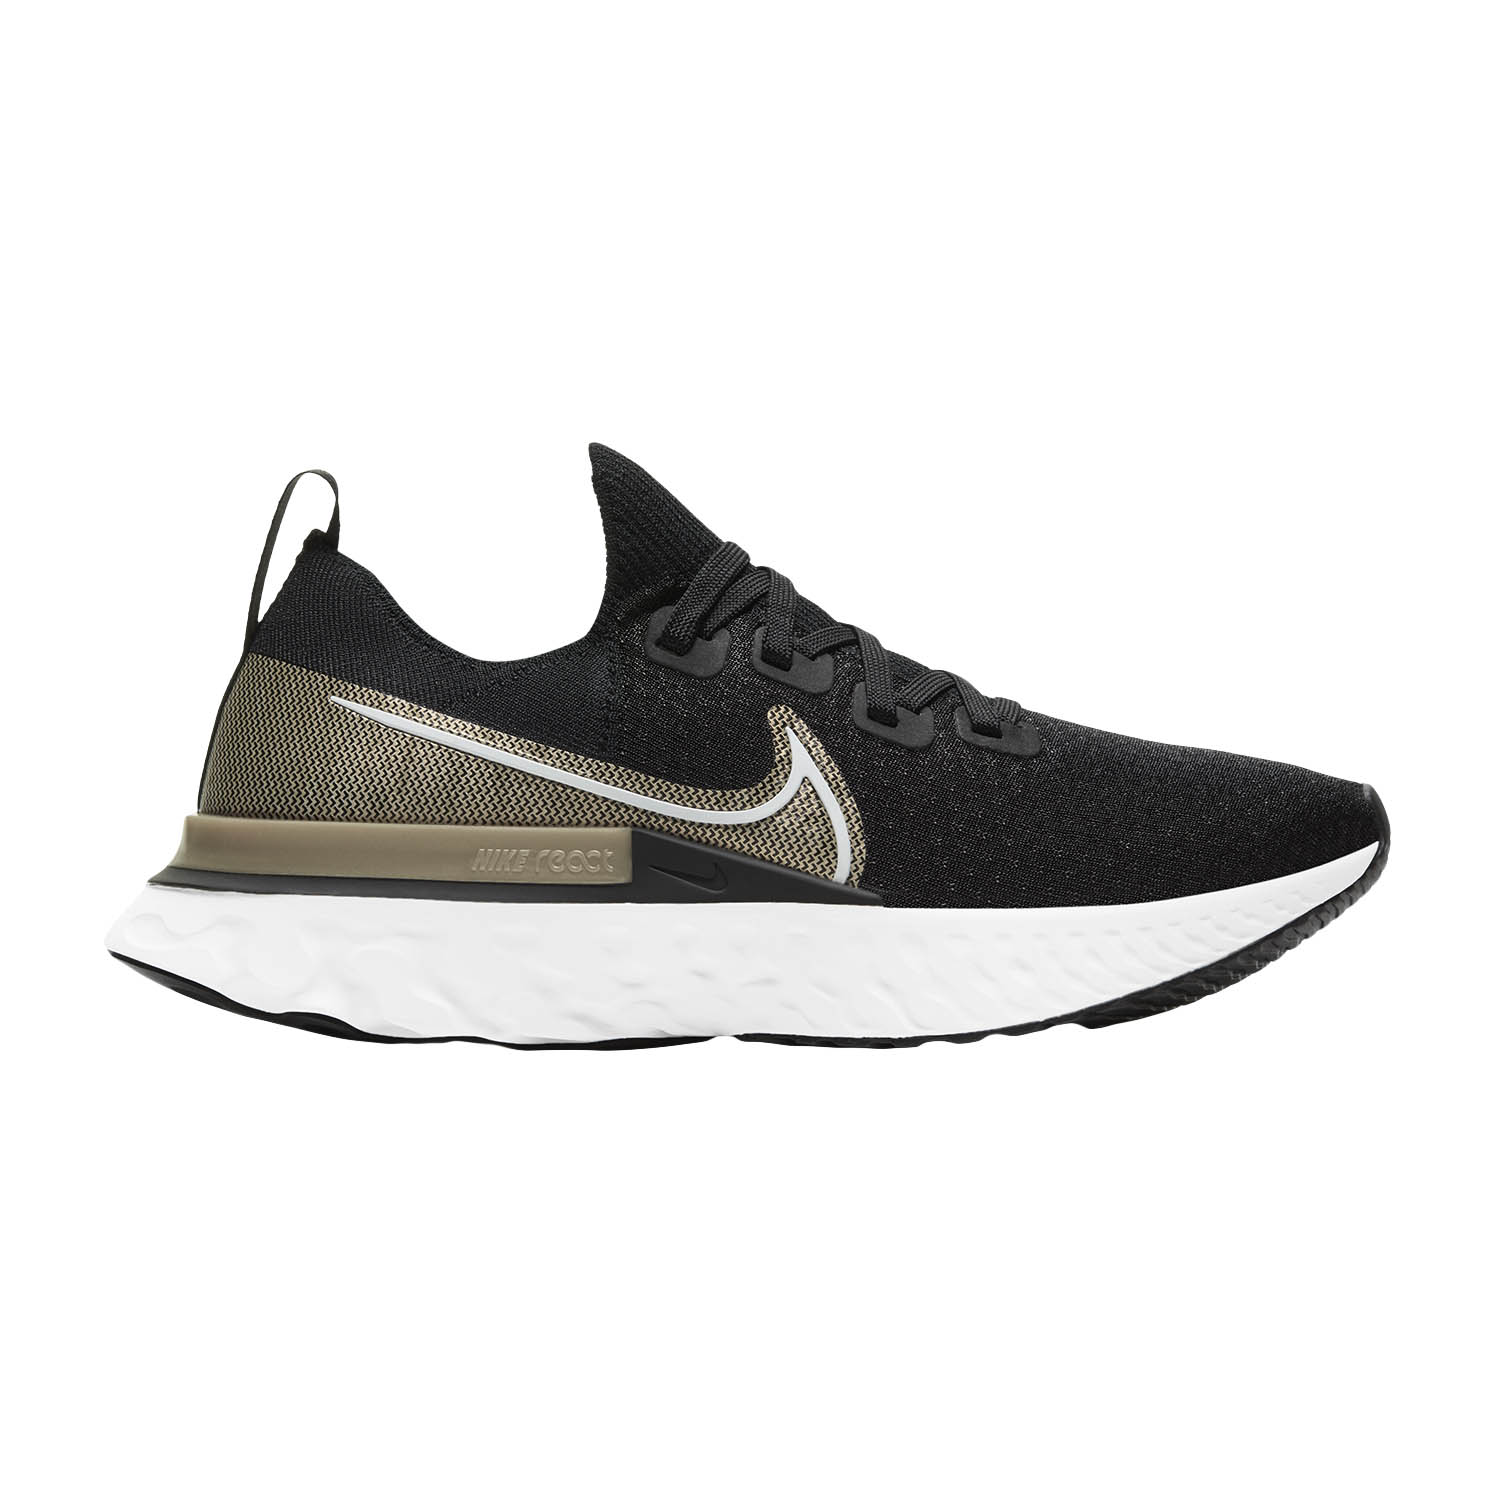 Nike React Infinity Run Flyknit Premium - Black/White/Mtlc Gold Silk/Newsprint